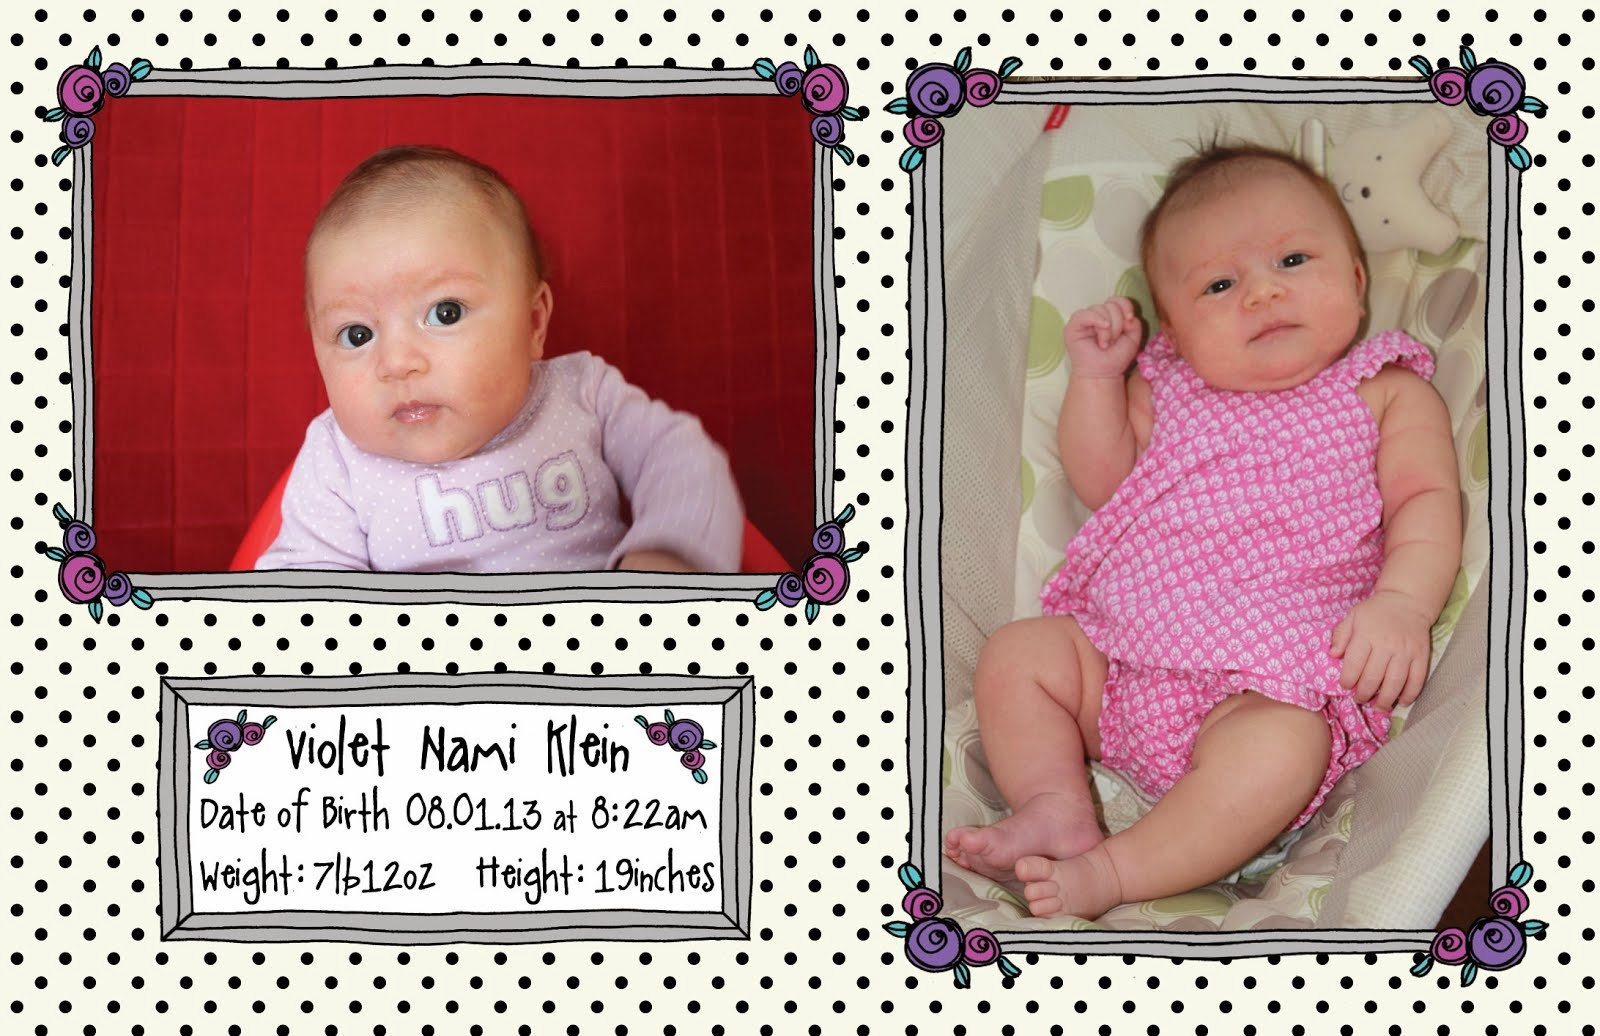 Violet's Birth Announcement